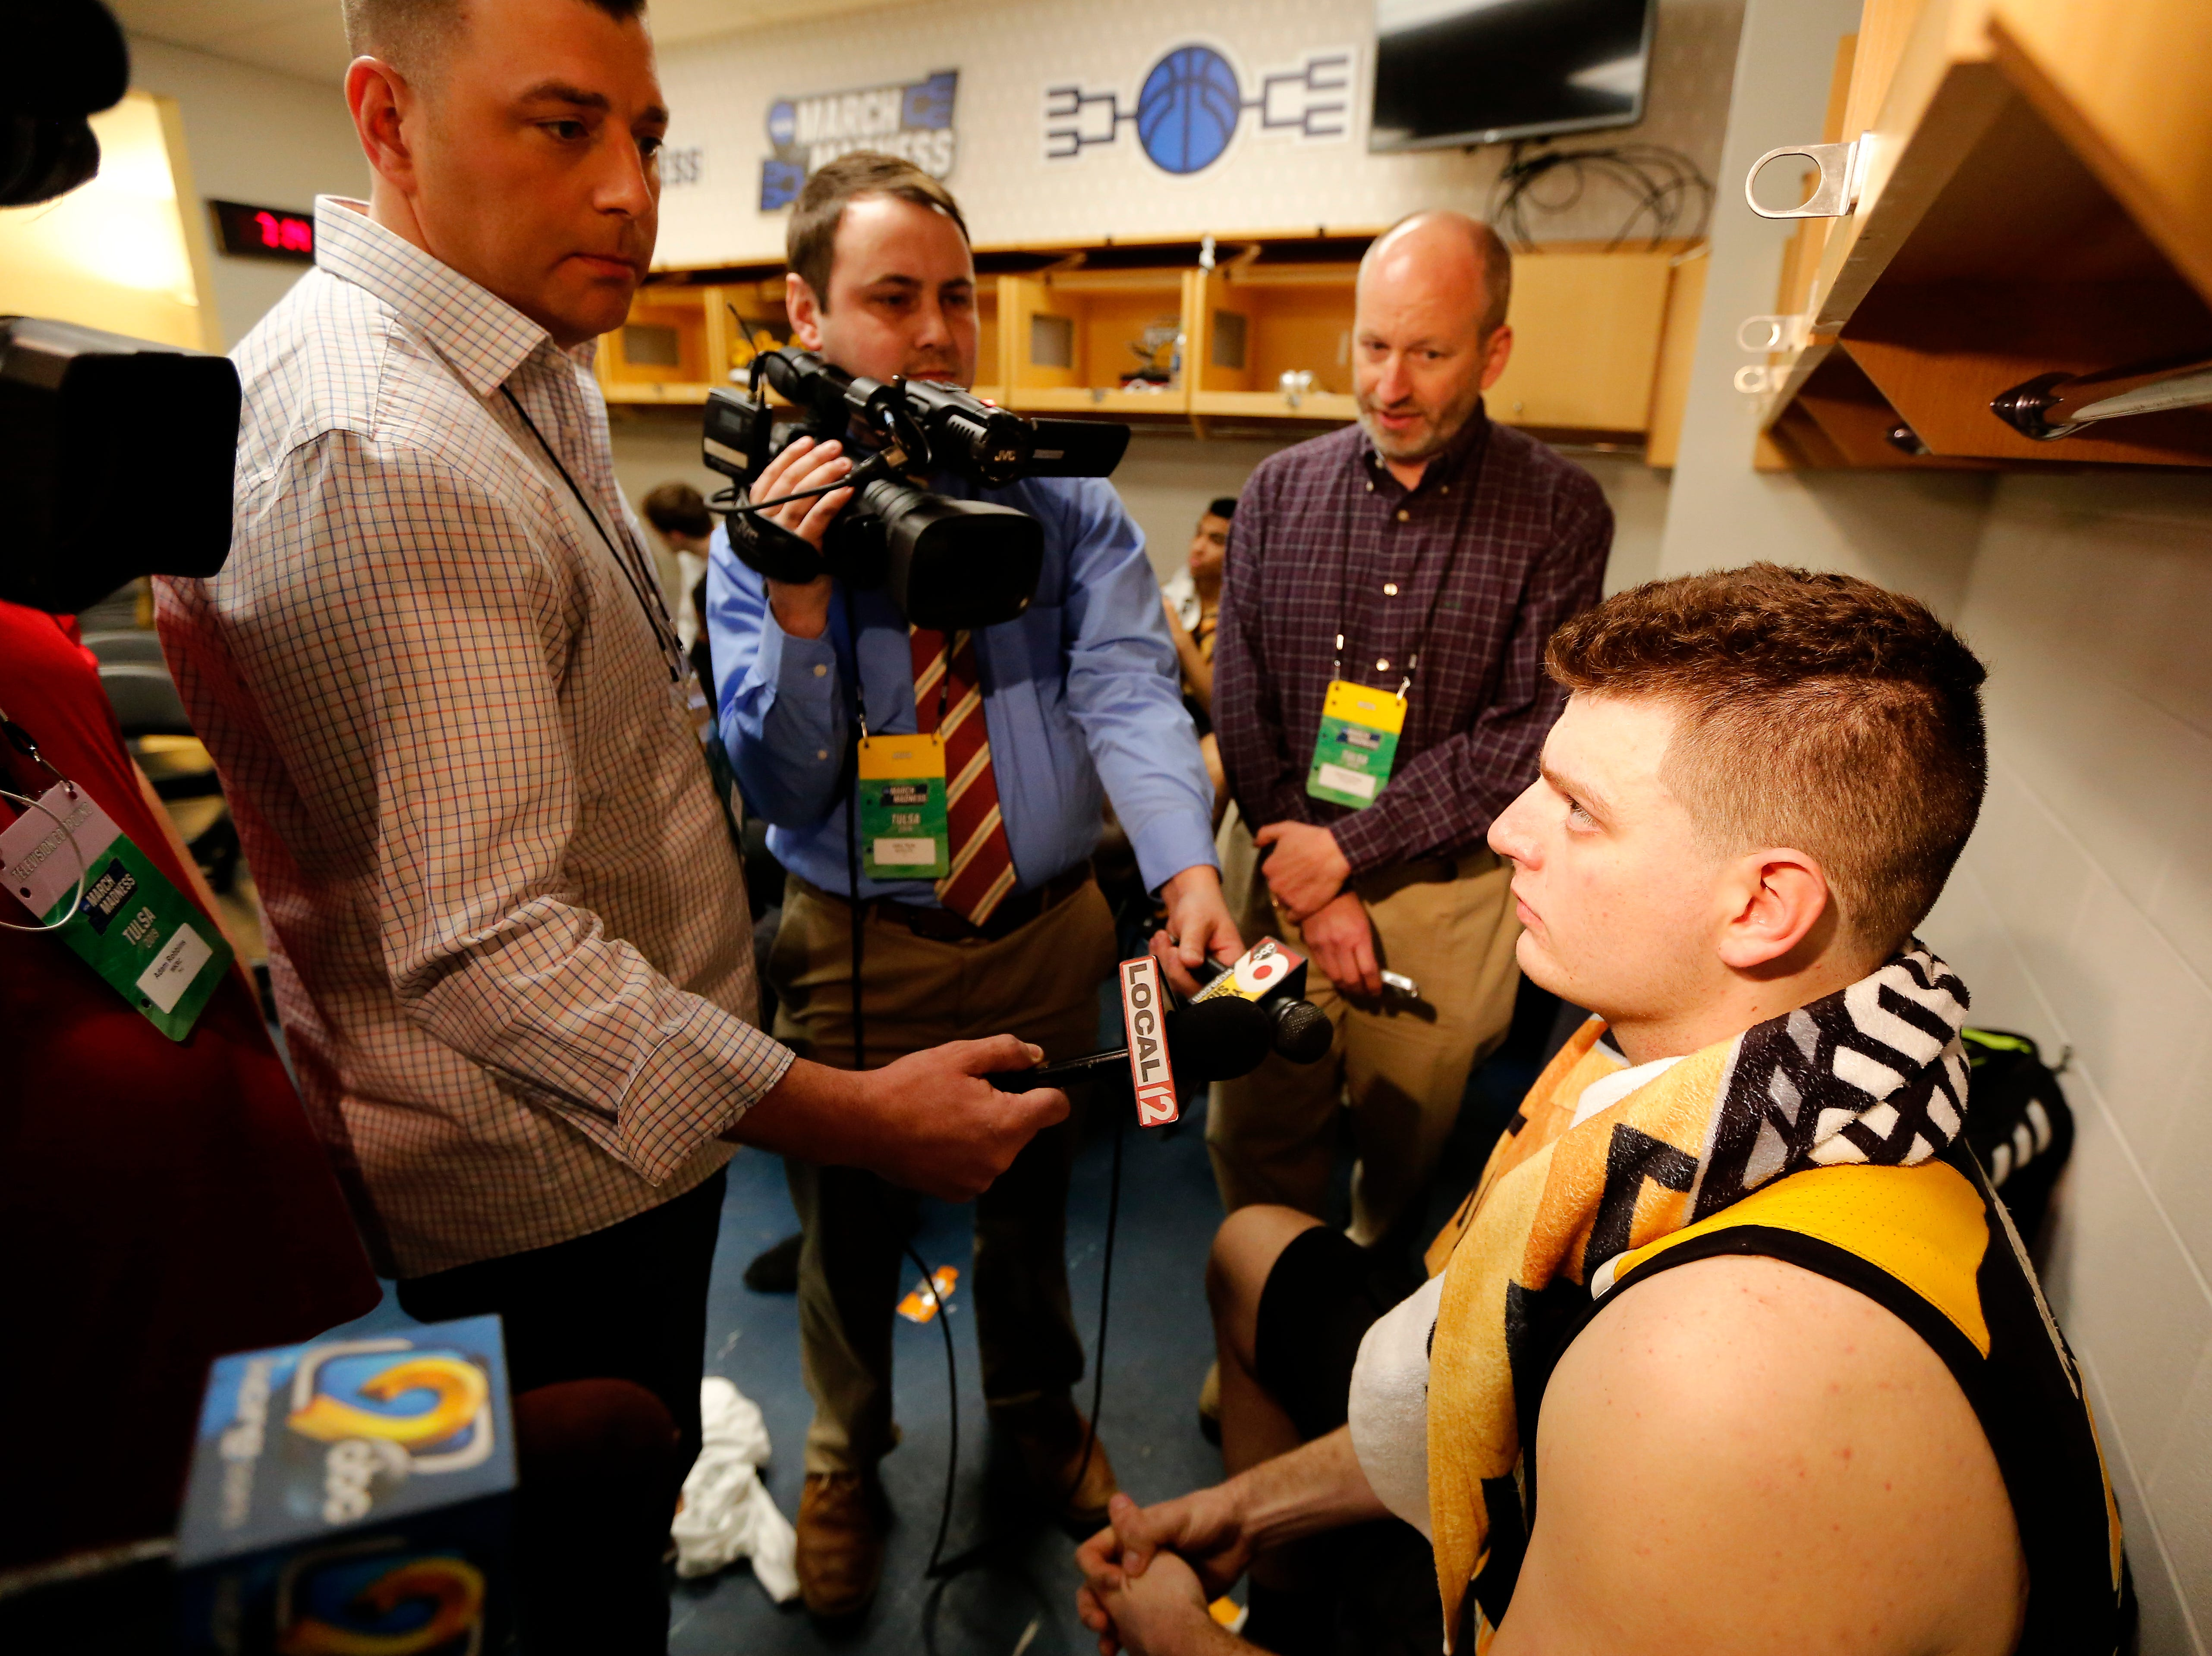 Northern Kentucky Norse forward Drew McDonald (34) talks with the media in the locker room after NCAA Tournament First Round game between the 14-seeded Northern Kentucky Norse and the 3-seeded Texas Tech Red Raiders the BOK Center in downtown Tulsa on Friday, March 22, 2019. NKU was knocked from the tournament with a 72-57 loss to the Red Raiders.